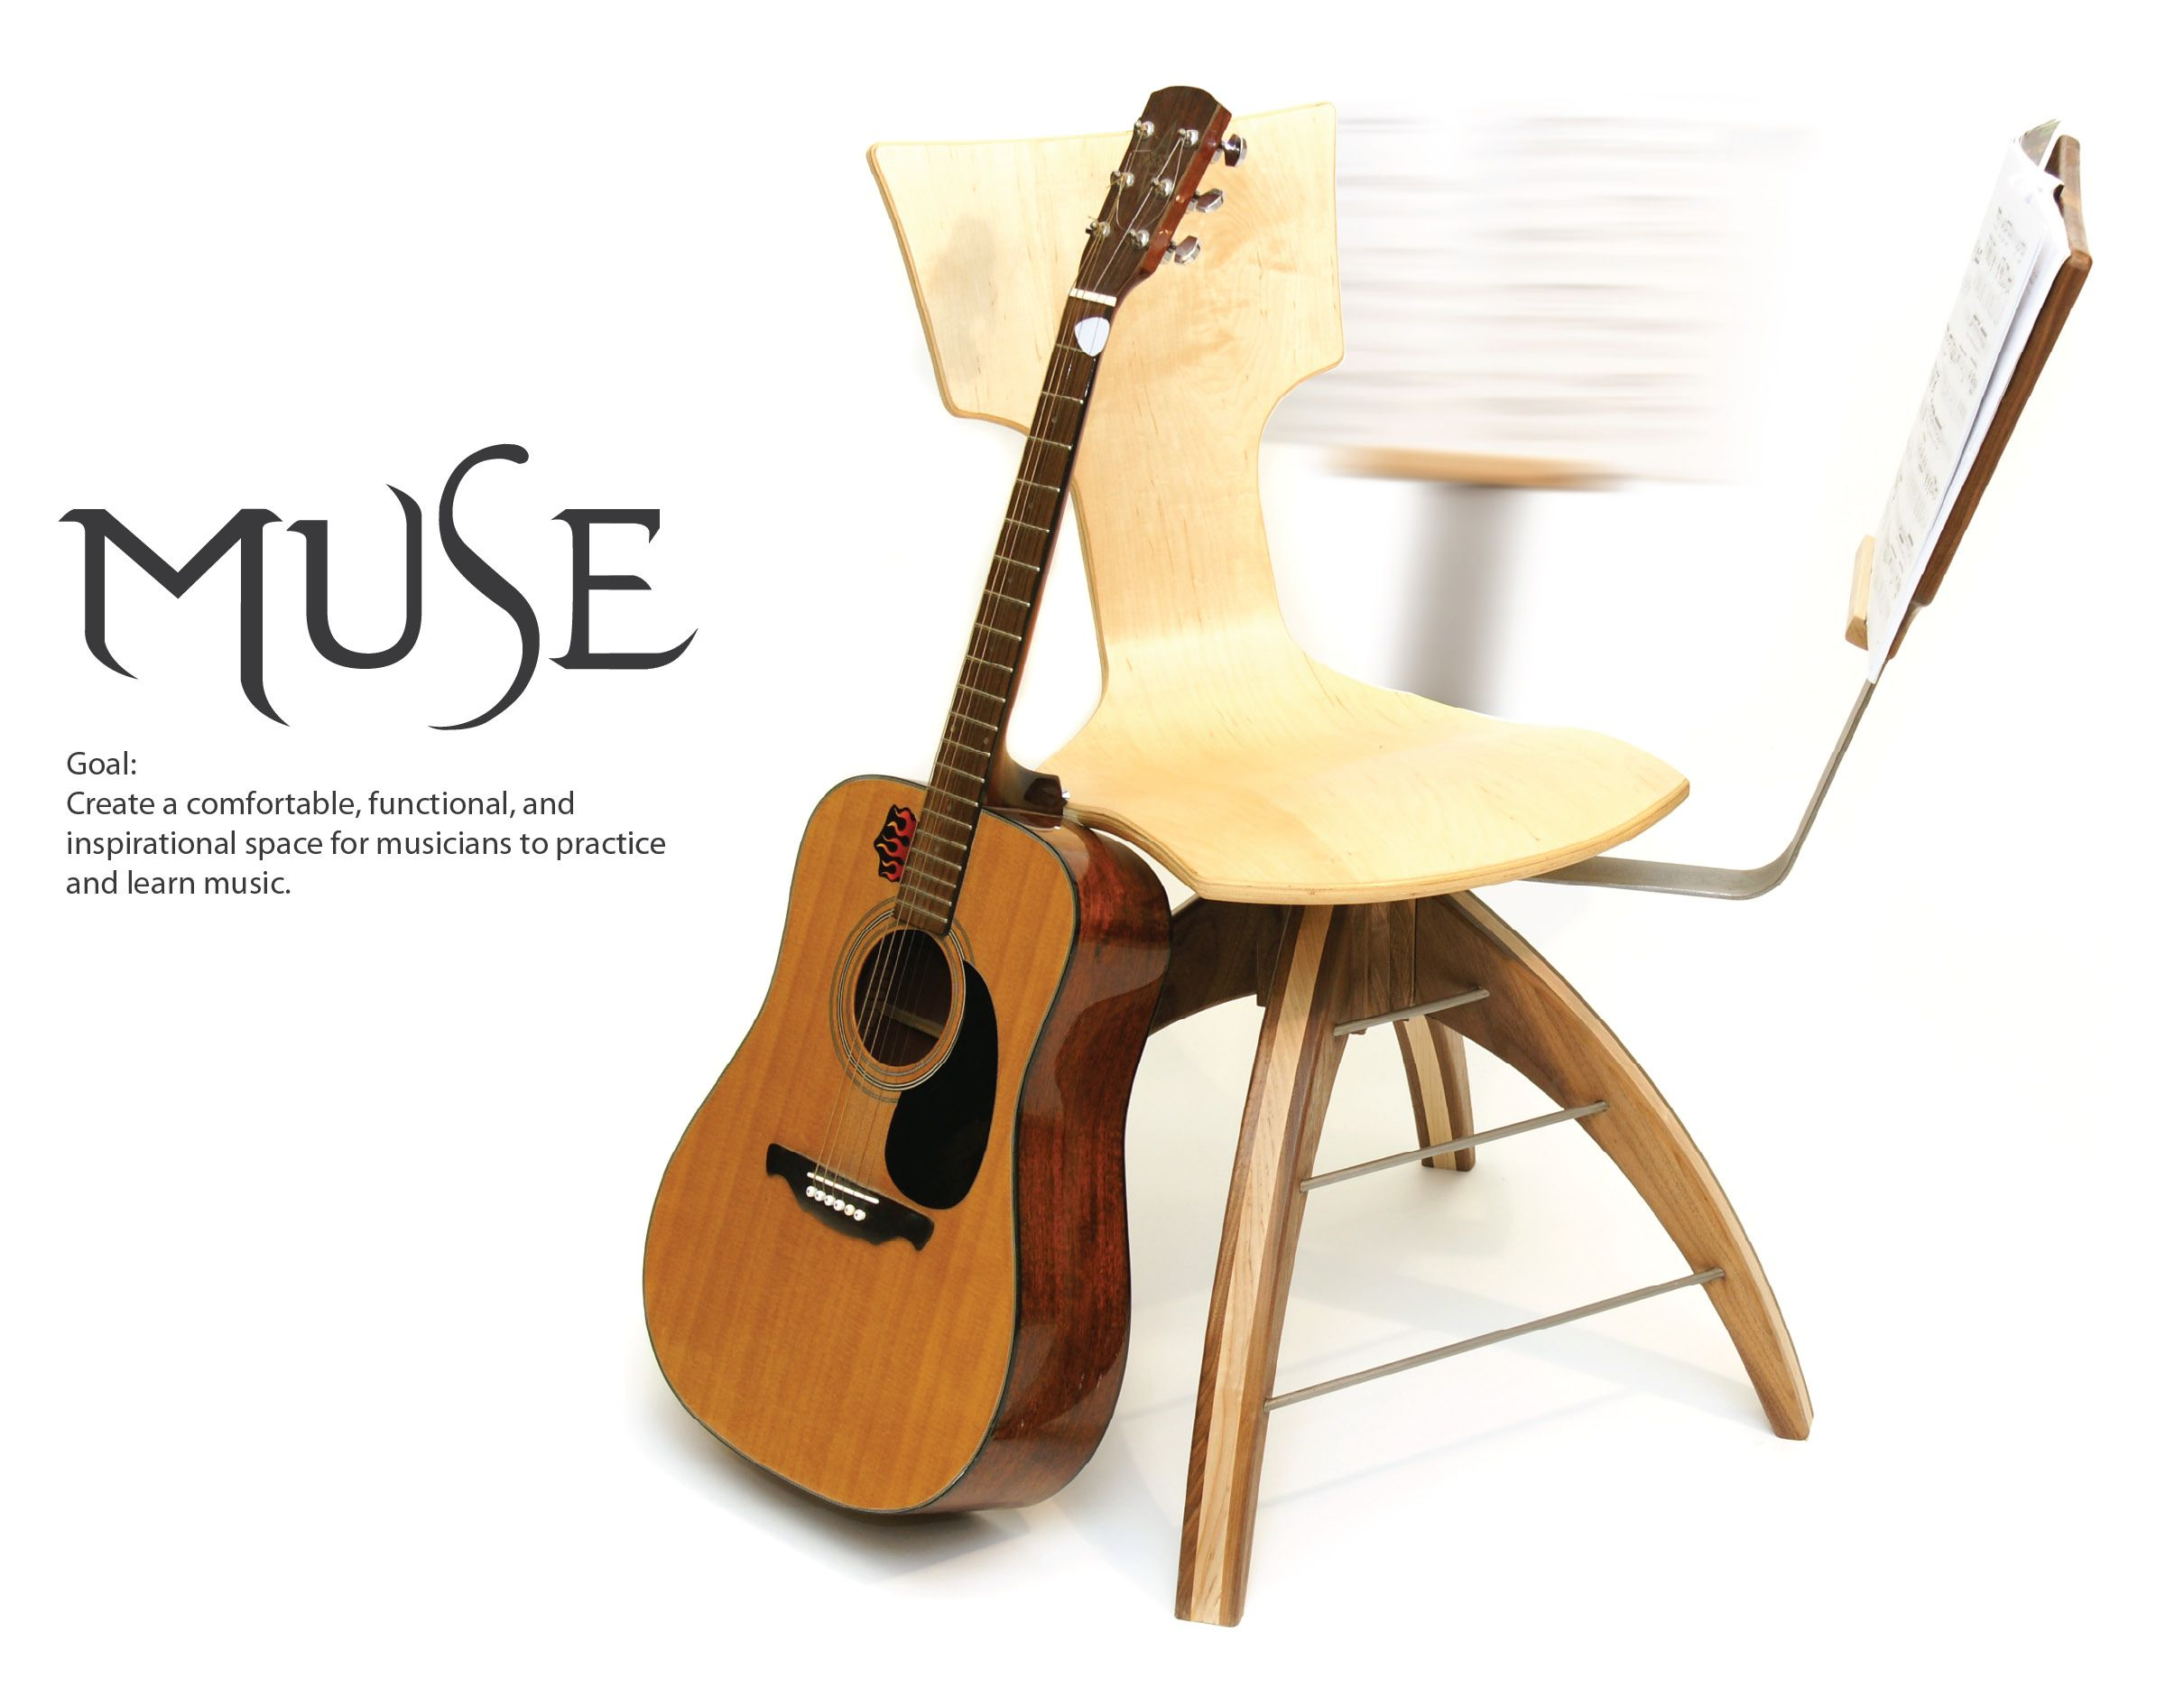 Astonishing Muse Inspire Your Creativity Guitar Chair Guitar Chair Onthecornerstone Fun Painted Chair Ideas Images Onthecornerstoneorg